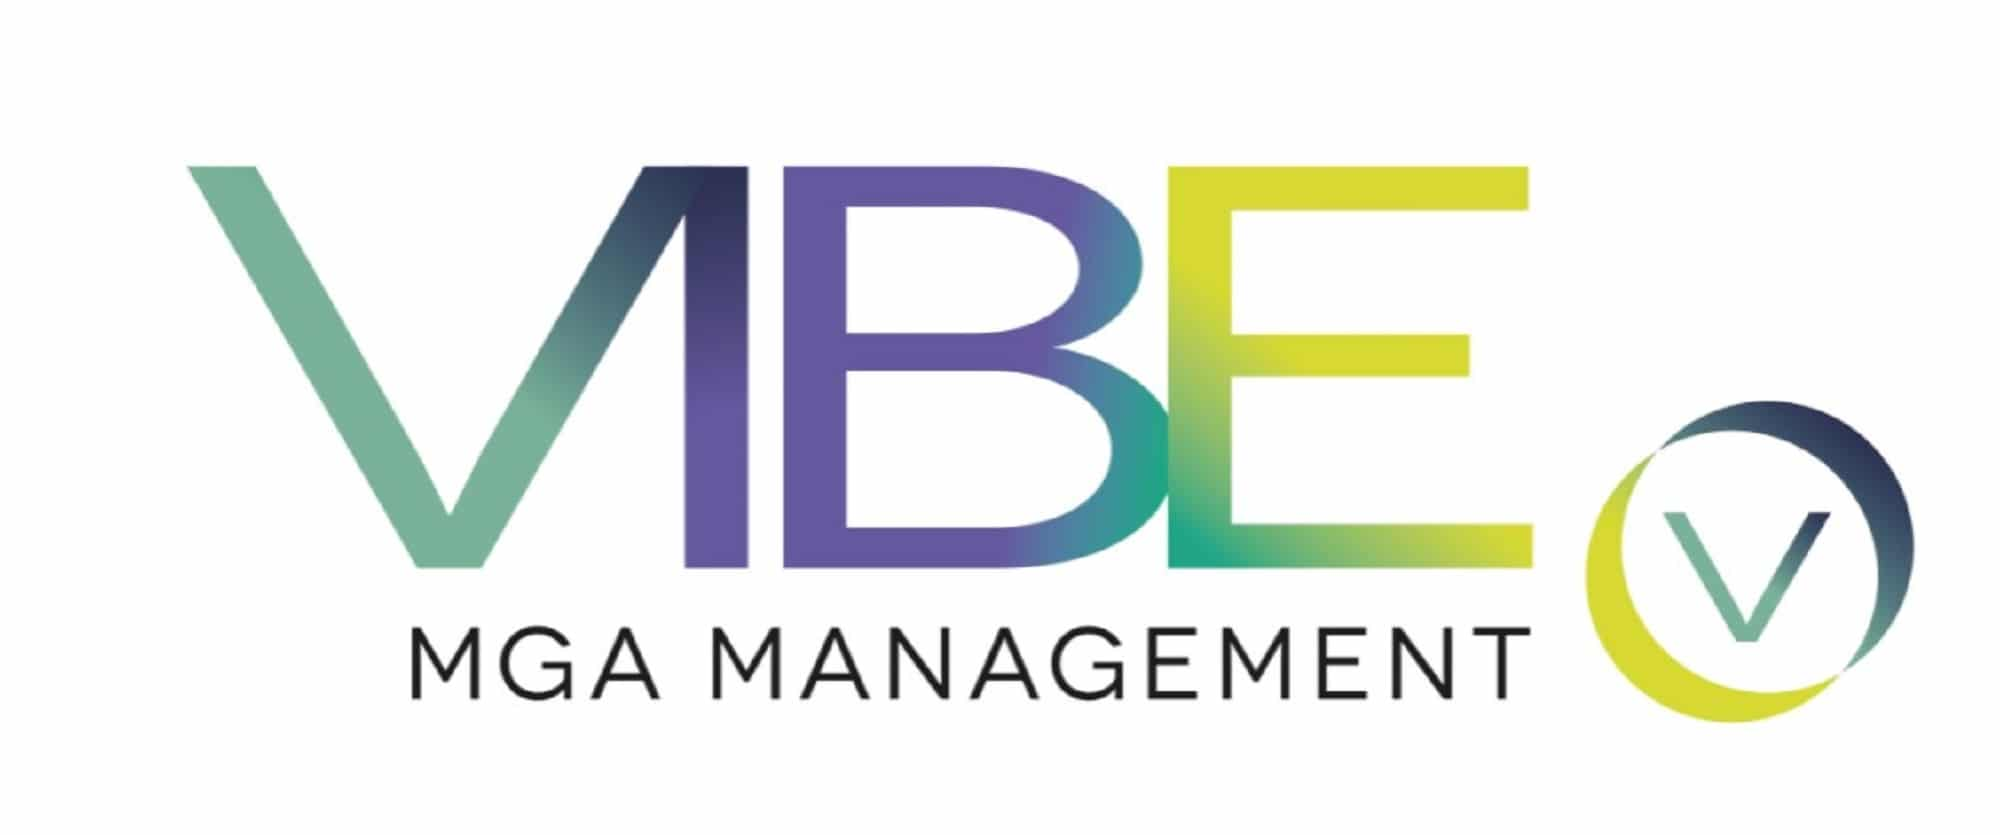 Vibe Syndicate Management (previously IMSL)